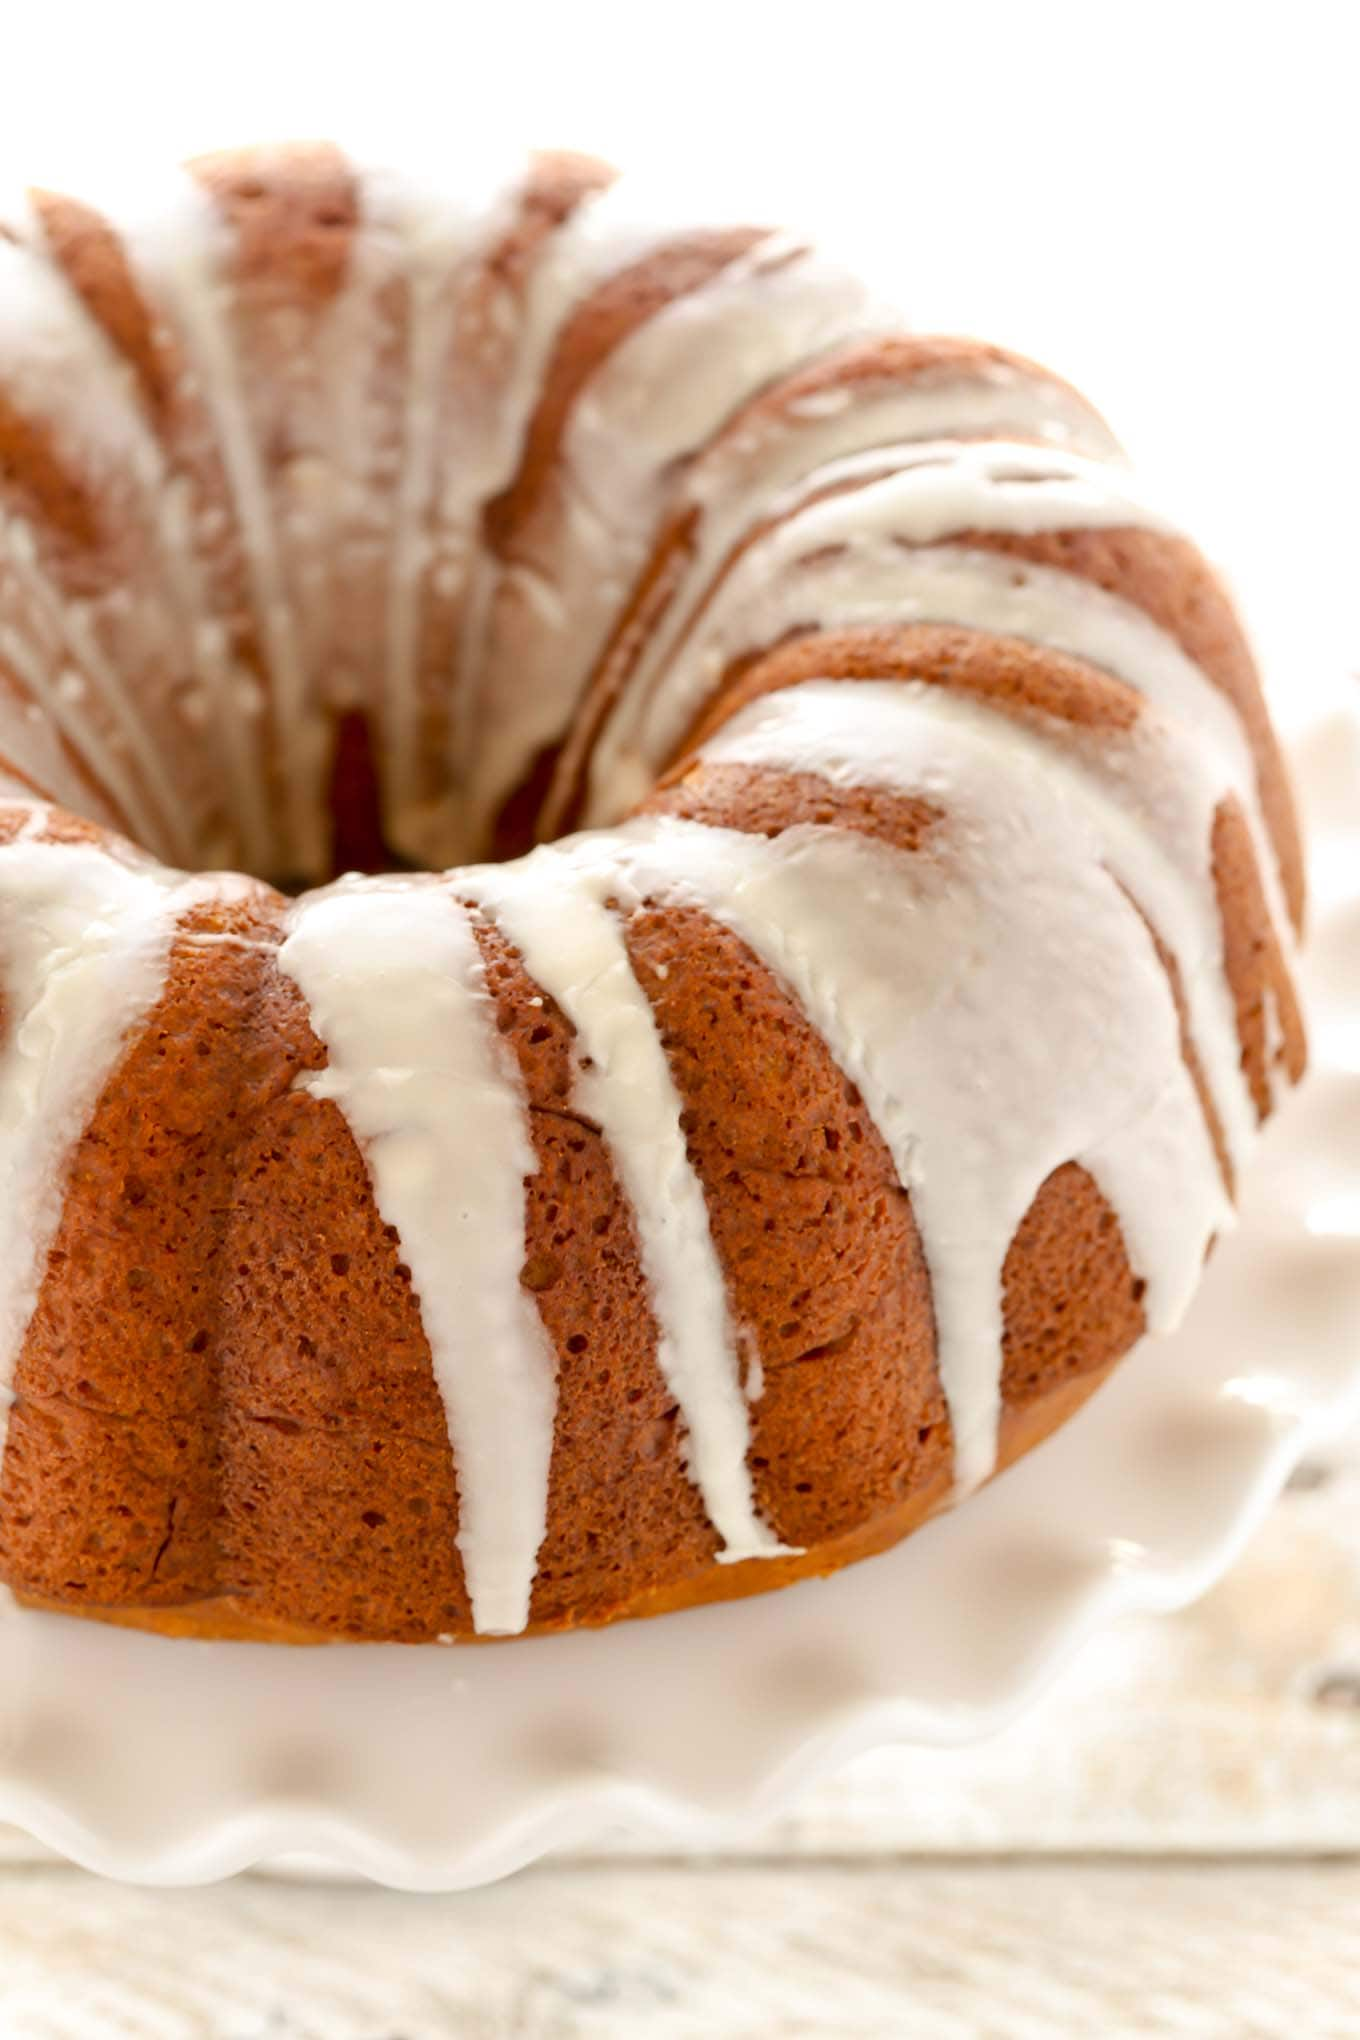 Cream Cheese Filling For Filled Bundt Cake